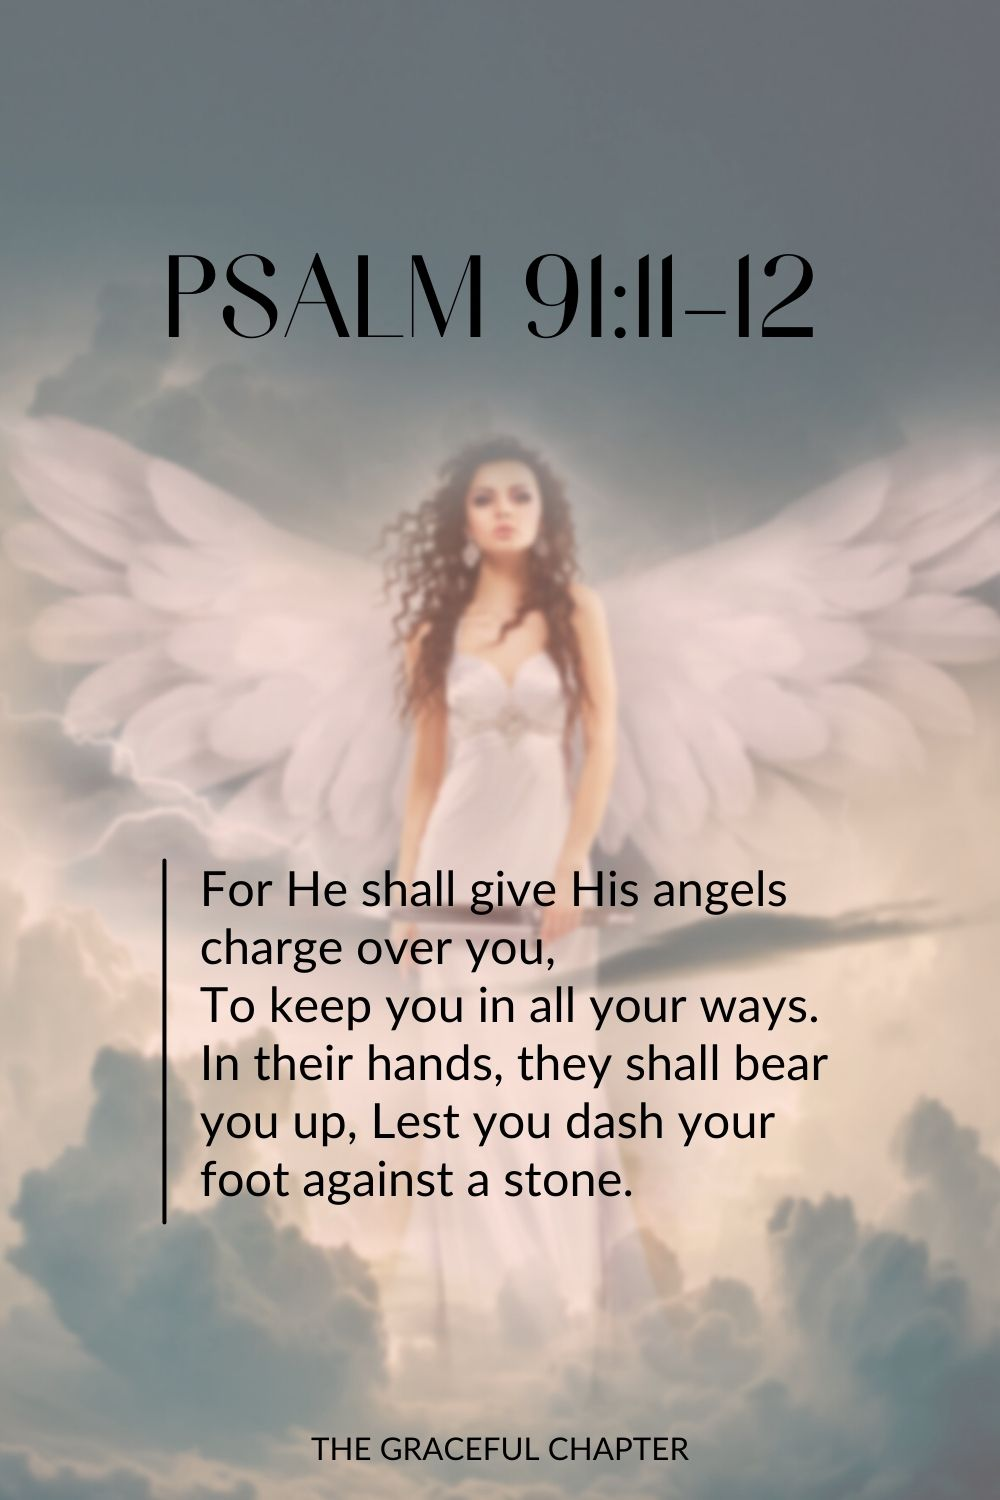 For He shall give His angels charge over you, To keep you in all your ways. In their hands they shall bear you up, Lest you dash your foot against a stone. Psalm 91:11-12